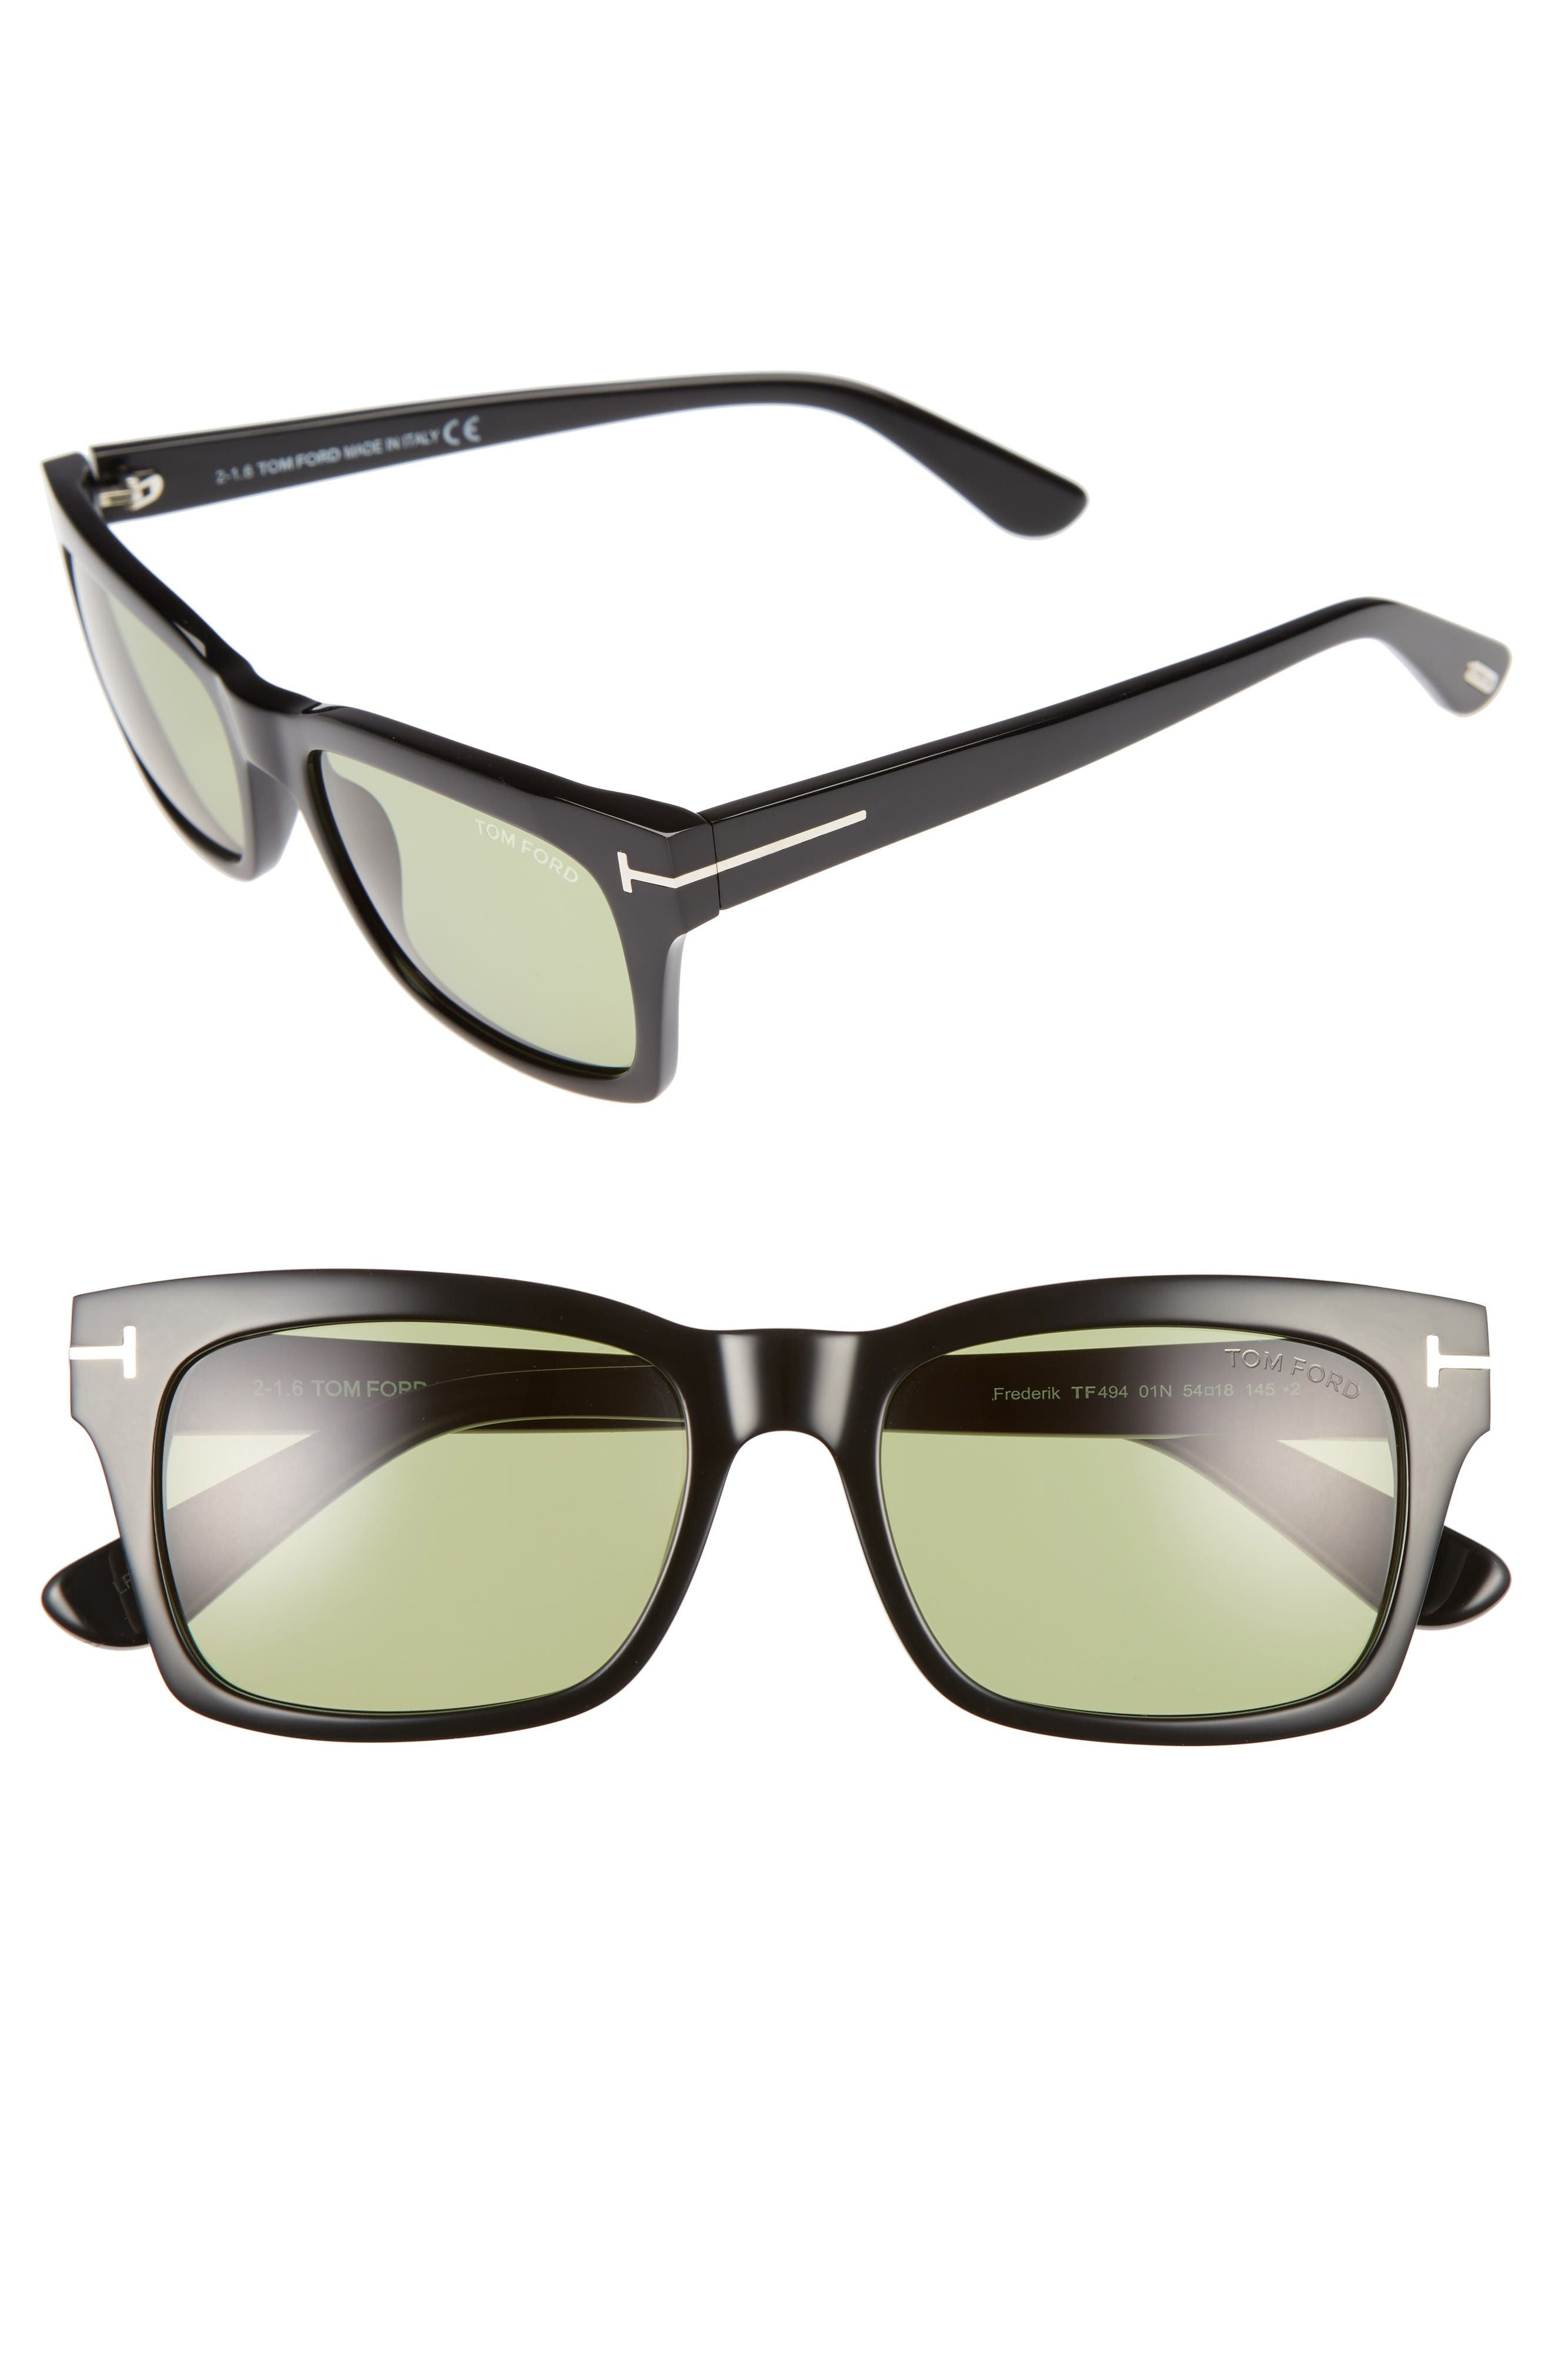 Tom Ford Frederick 54mm Sunglasses